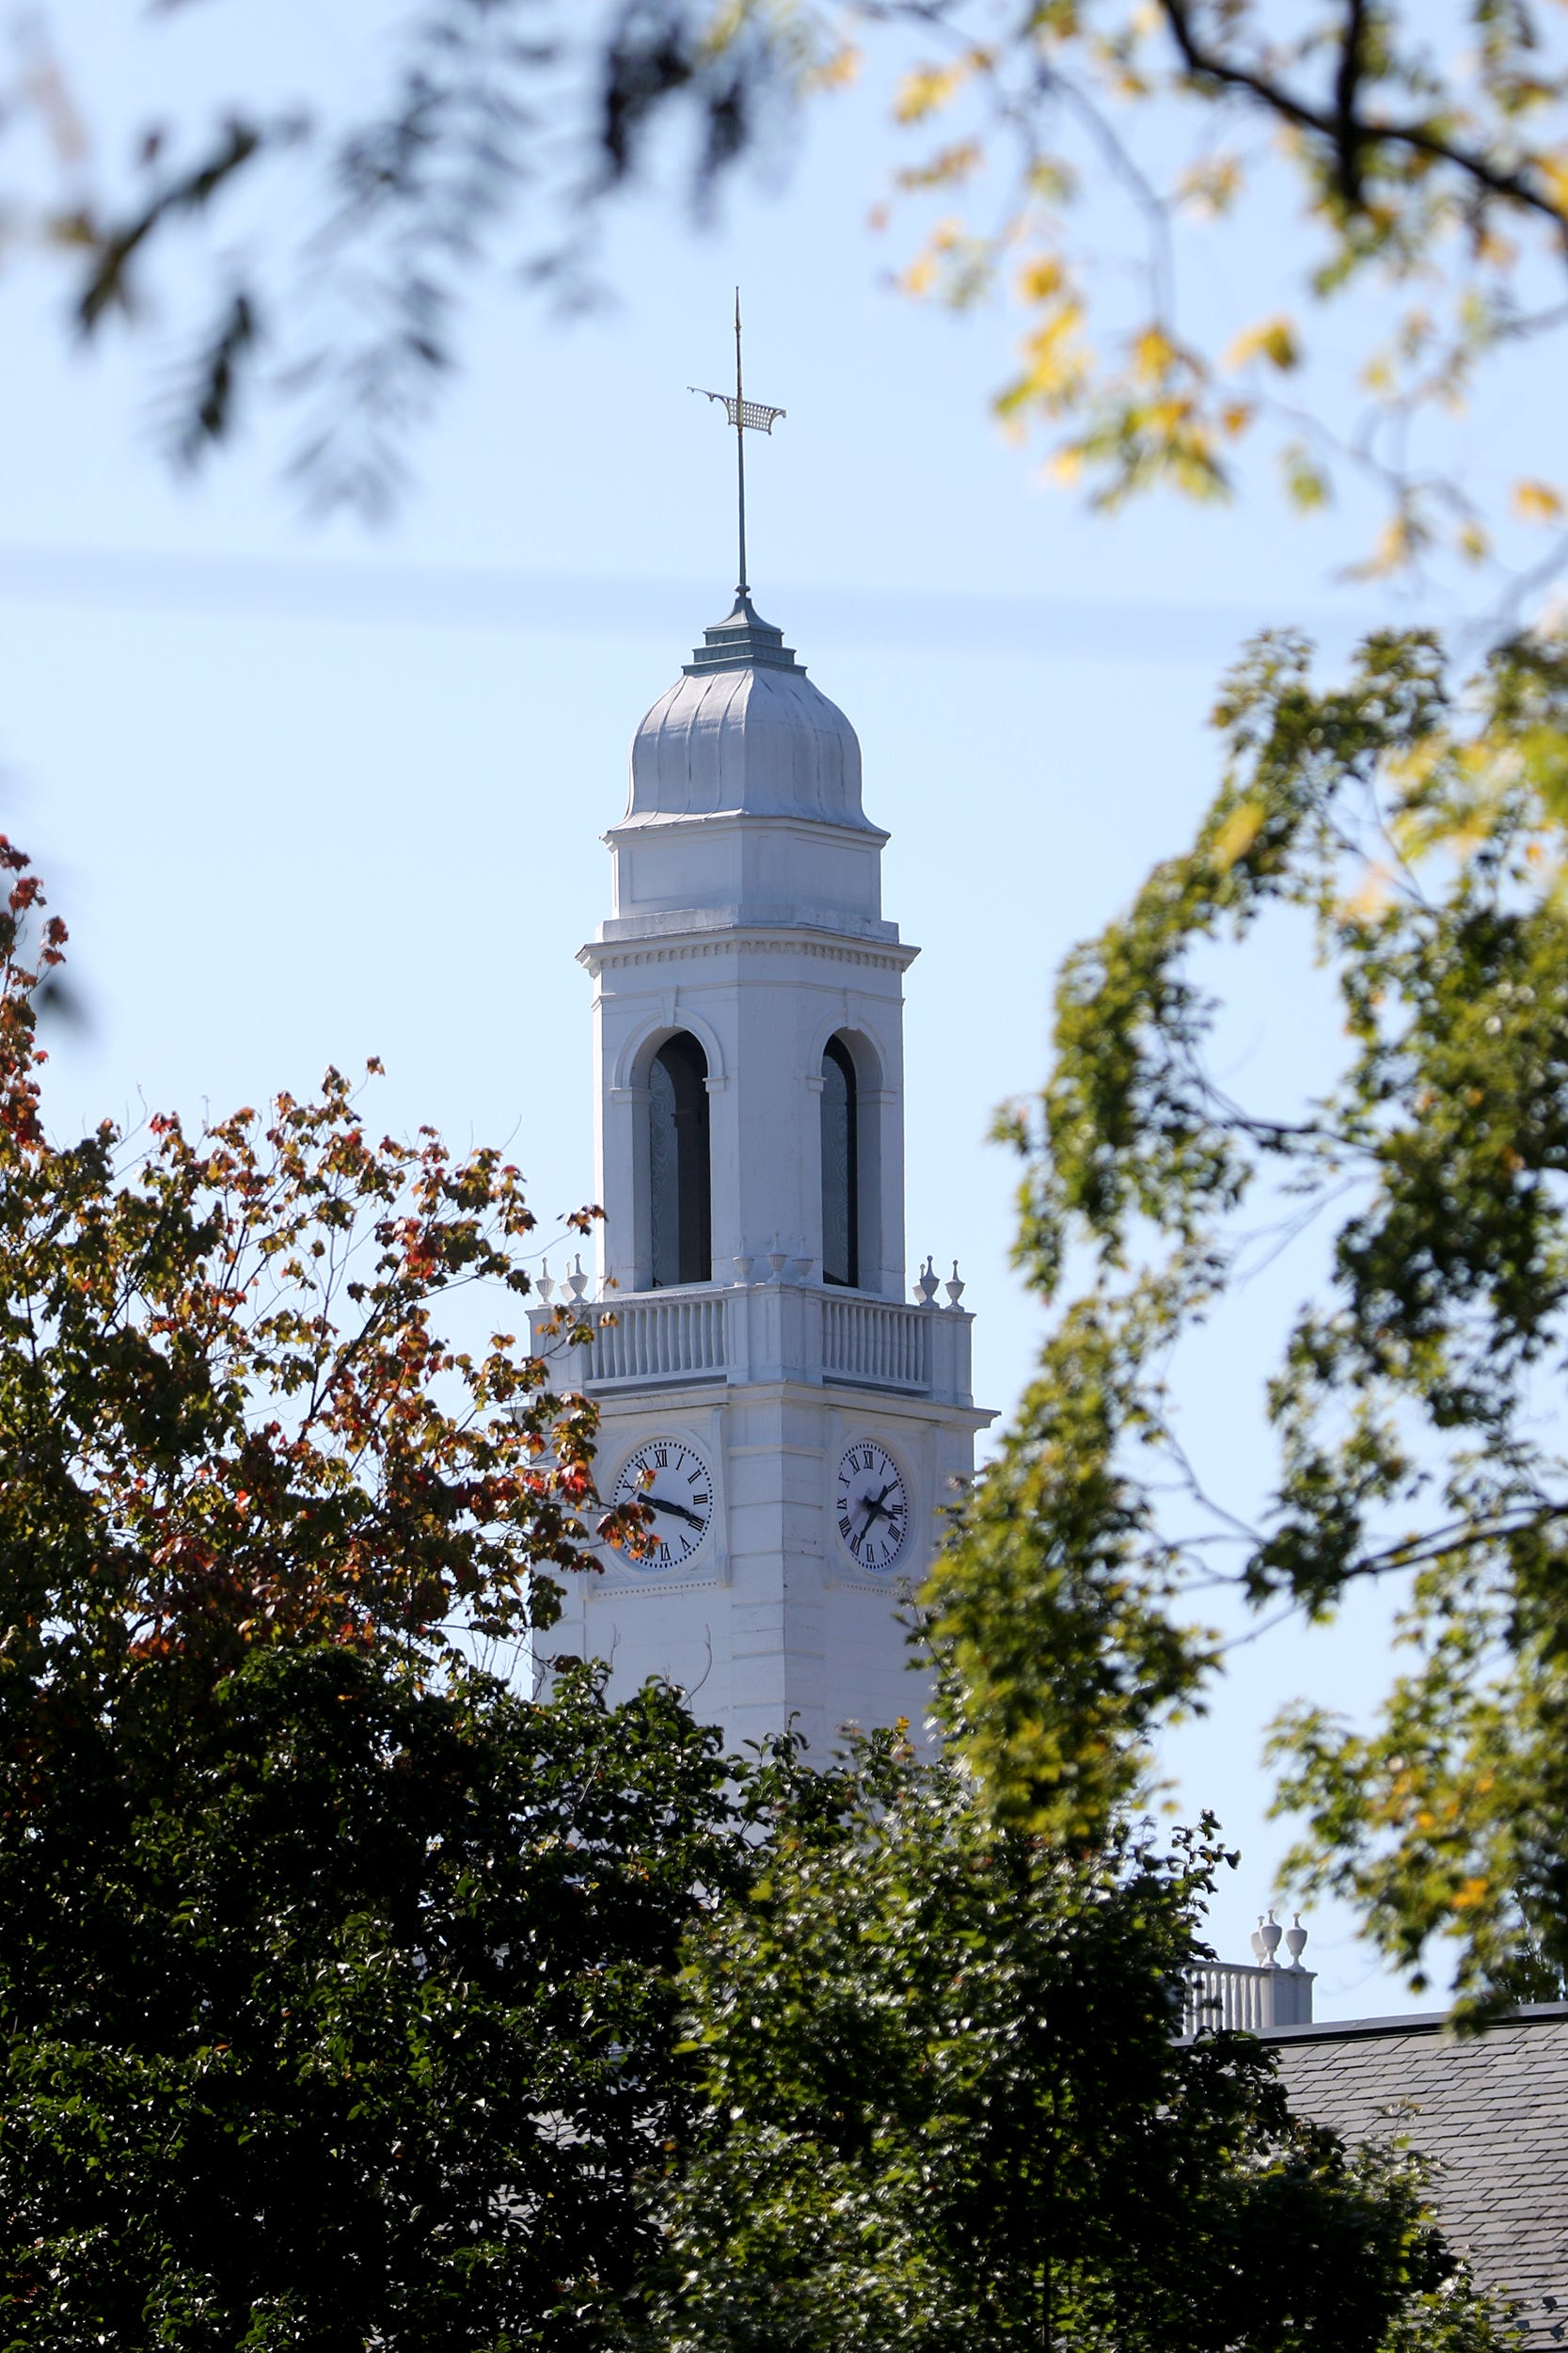 In recent years Drew University has grown its programs, adding new majors, minors and combined degree offerings.